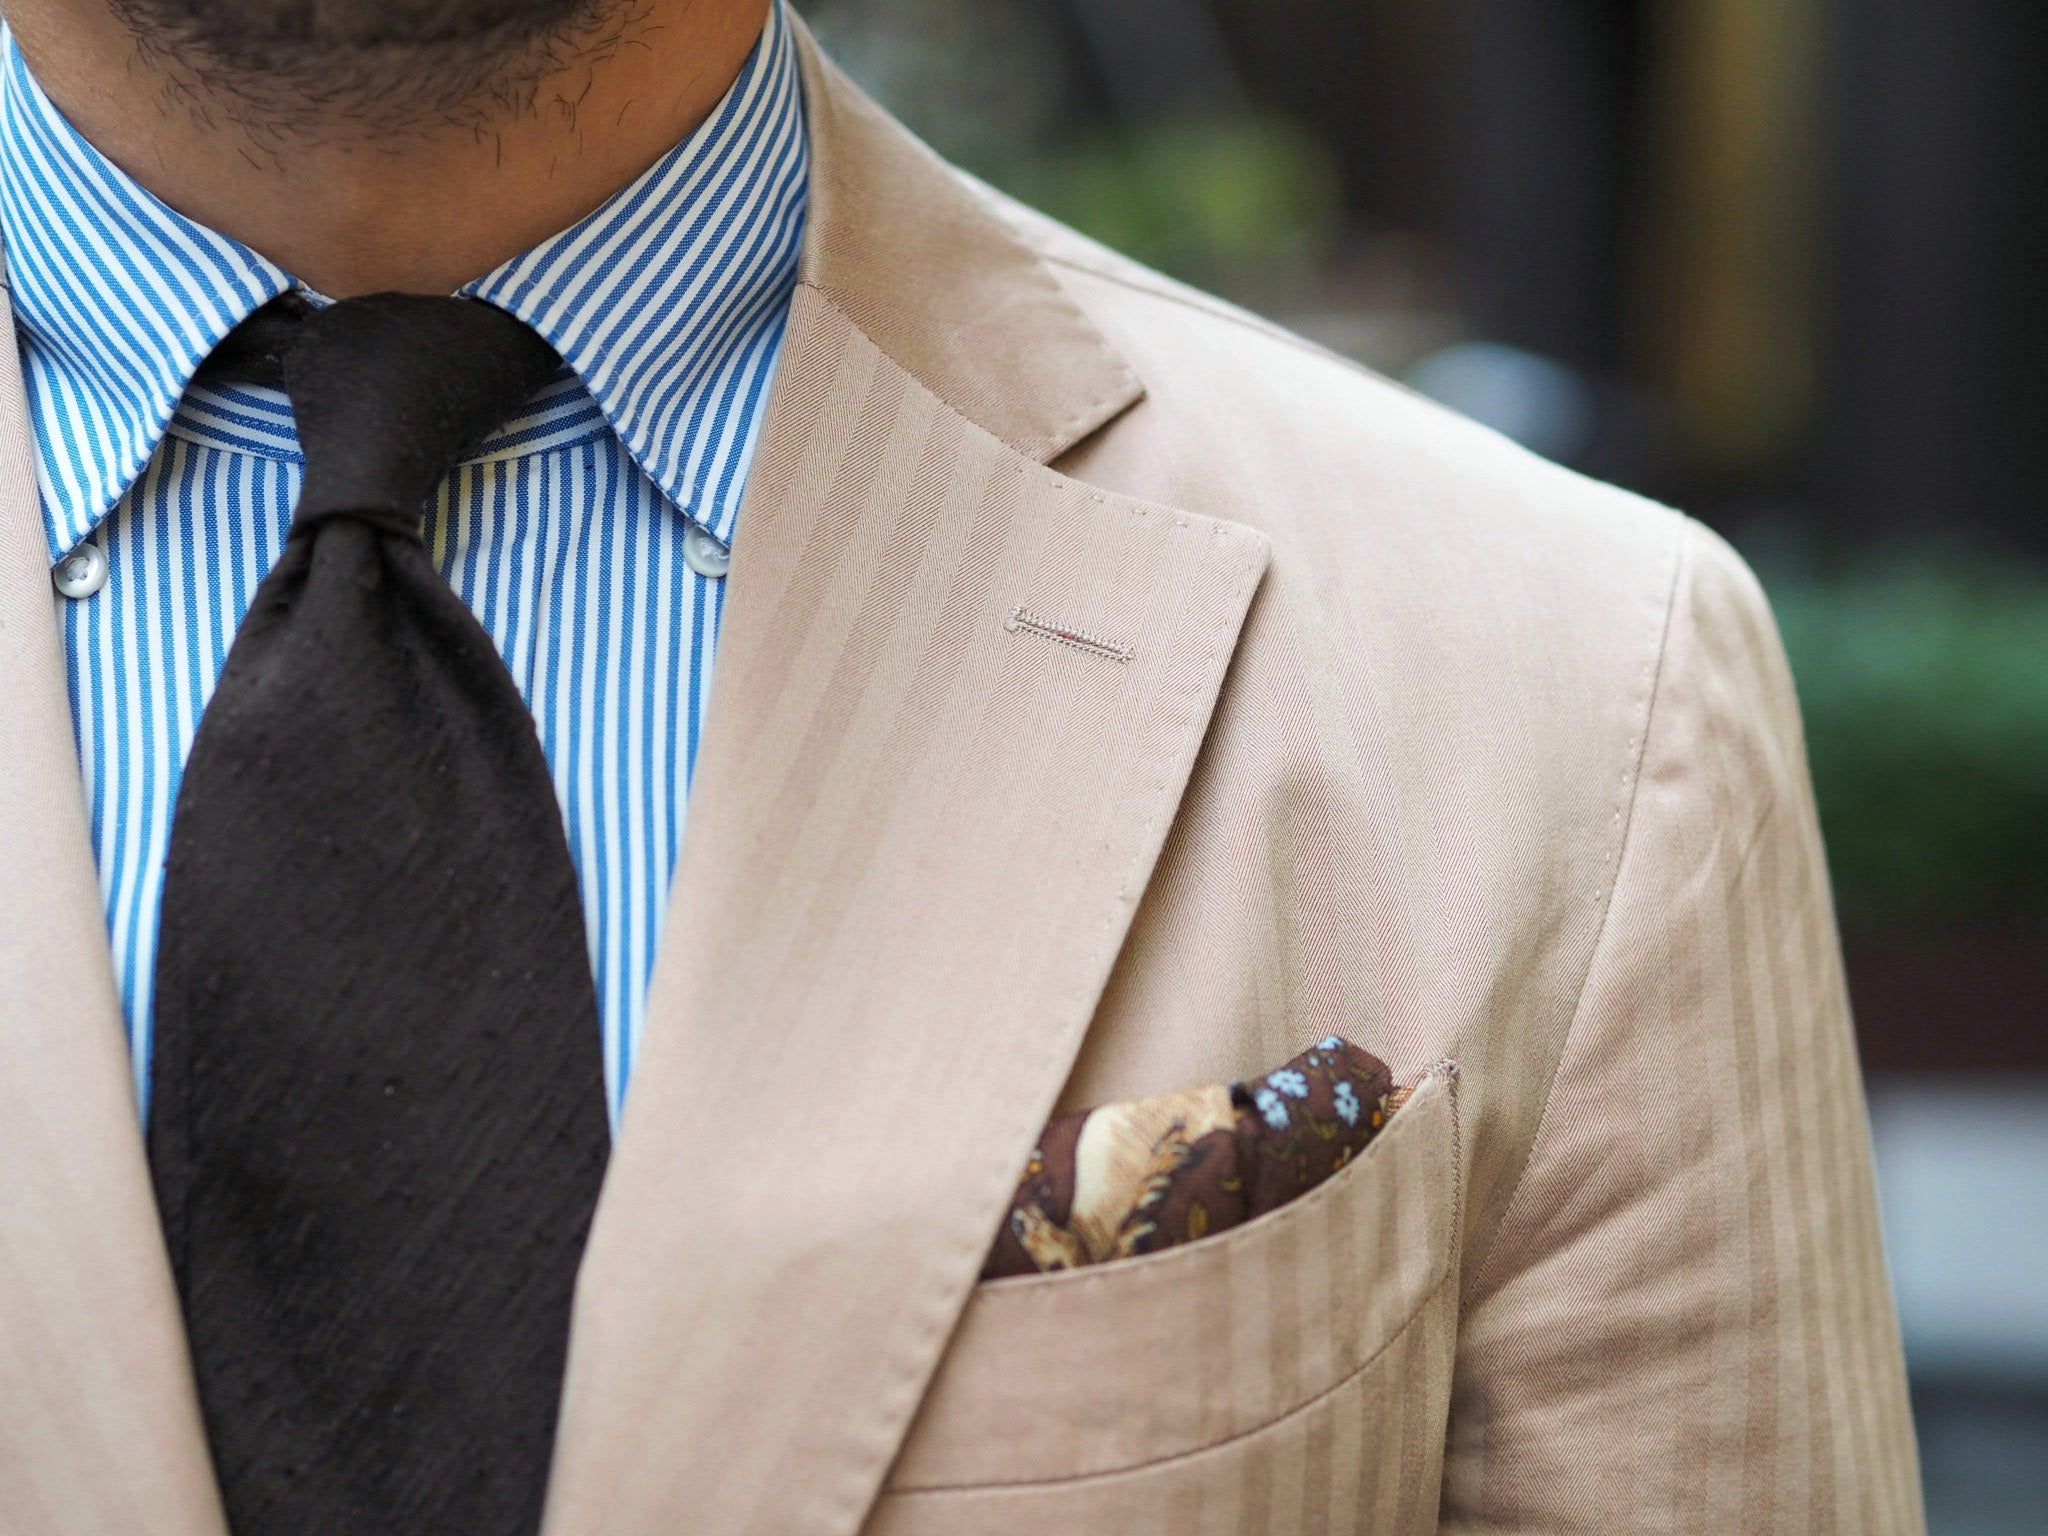 DLA-shantung-tie-and-Drakes-pocket-square-with-solaro-suit-jacket